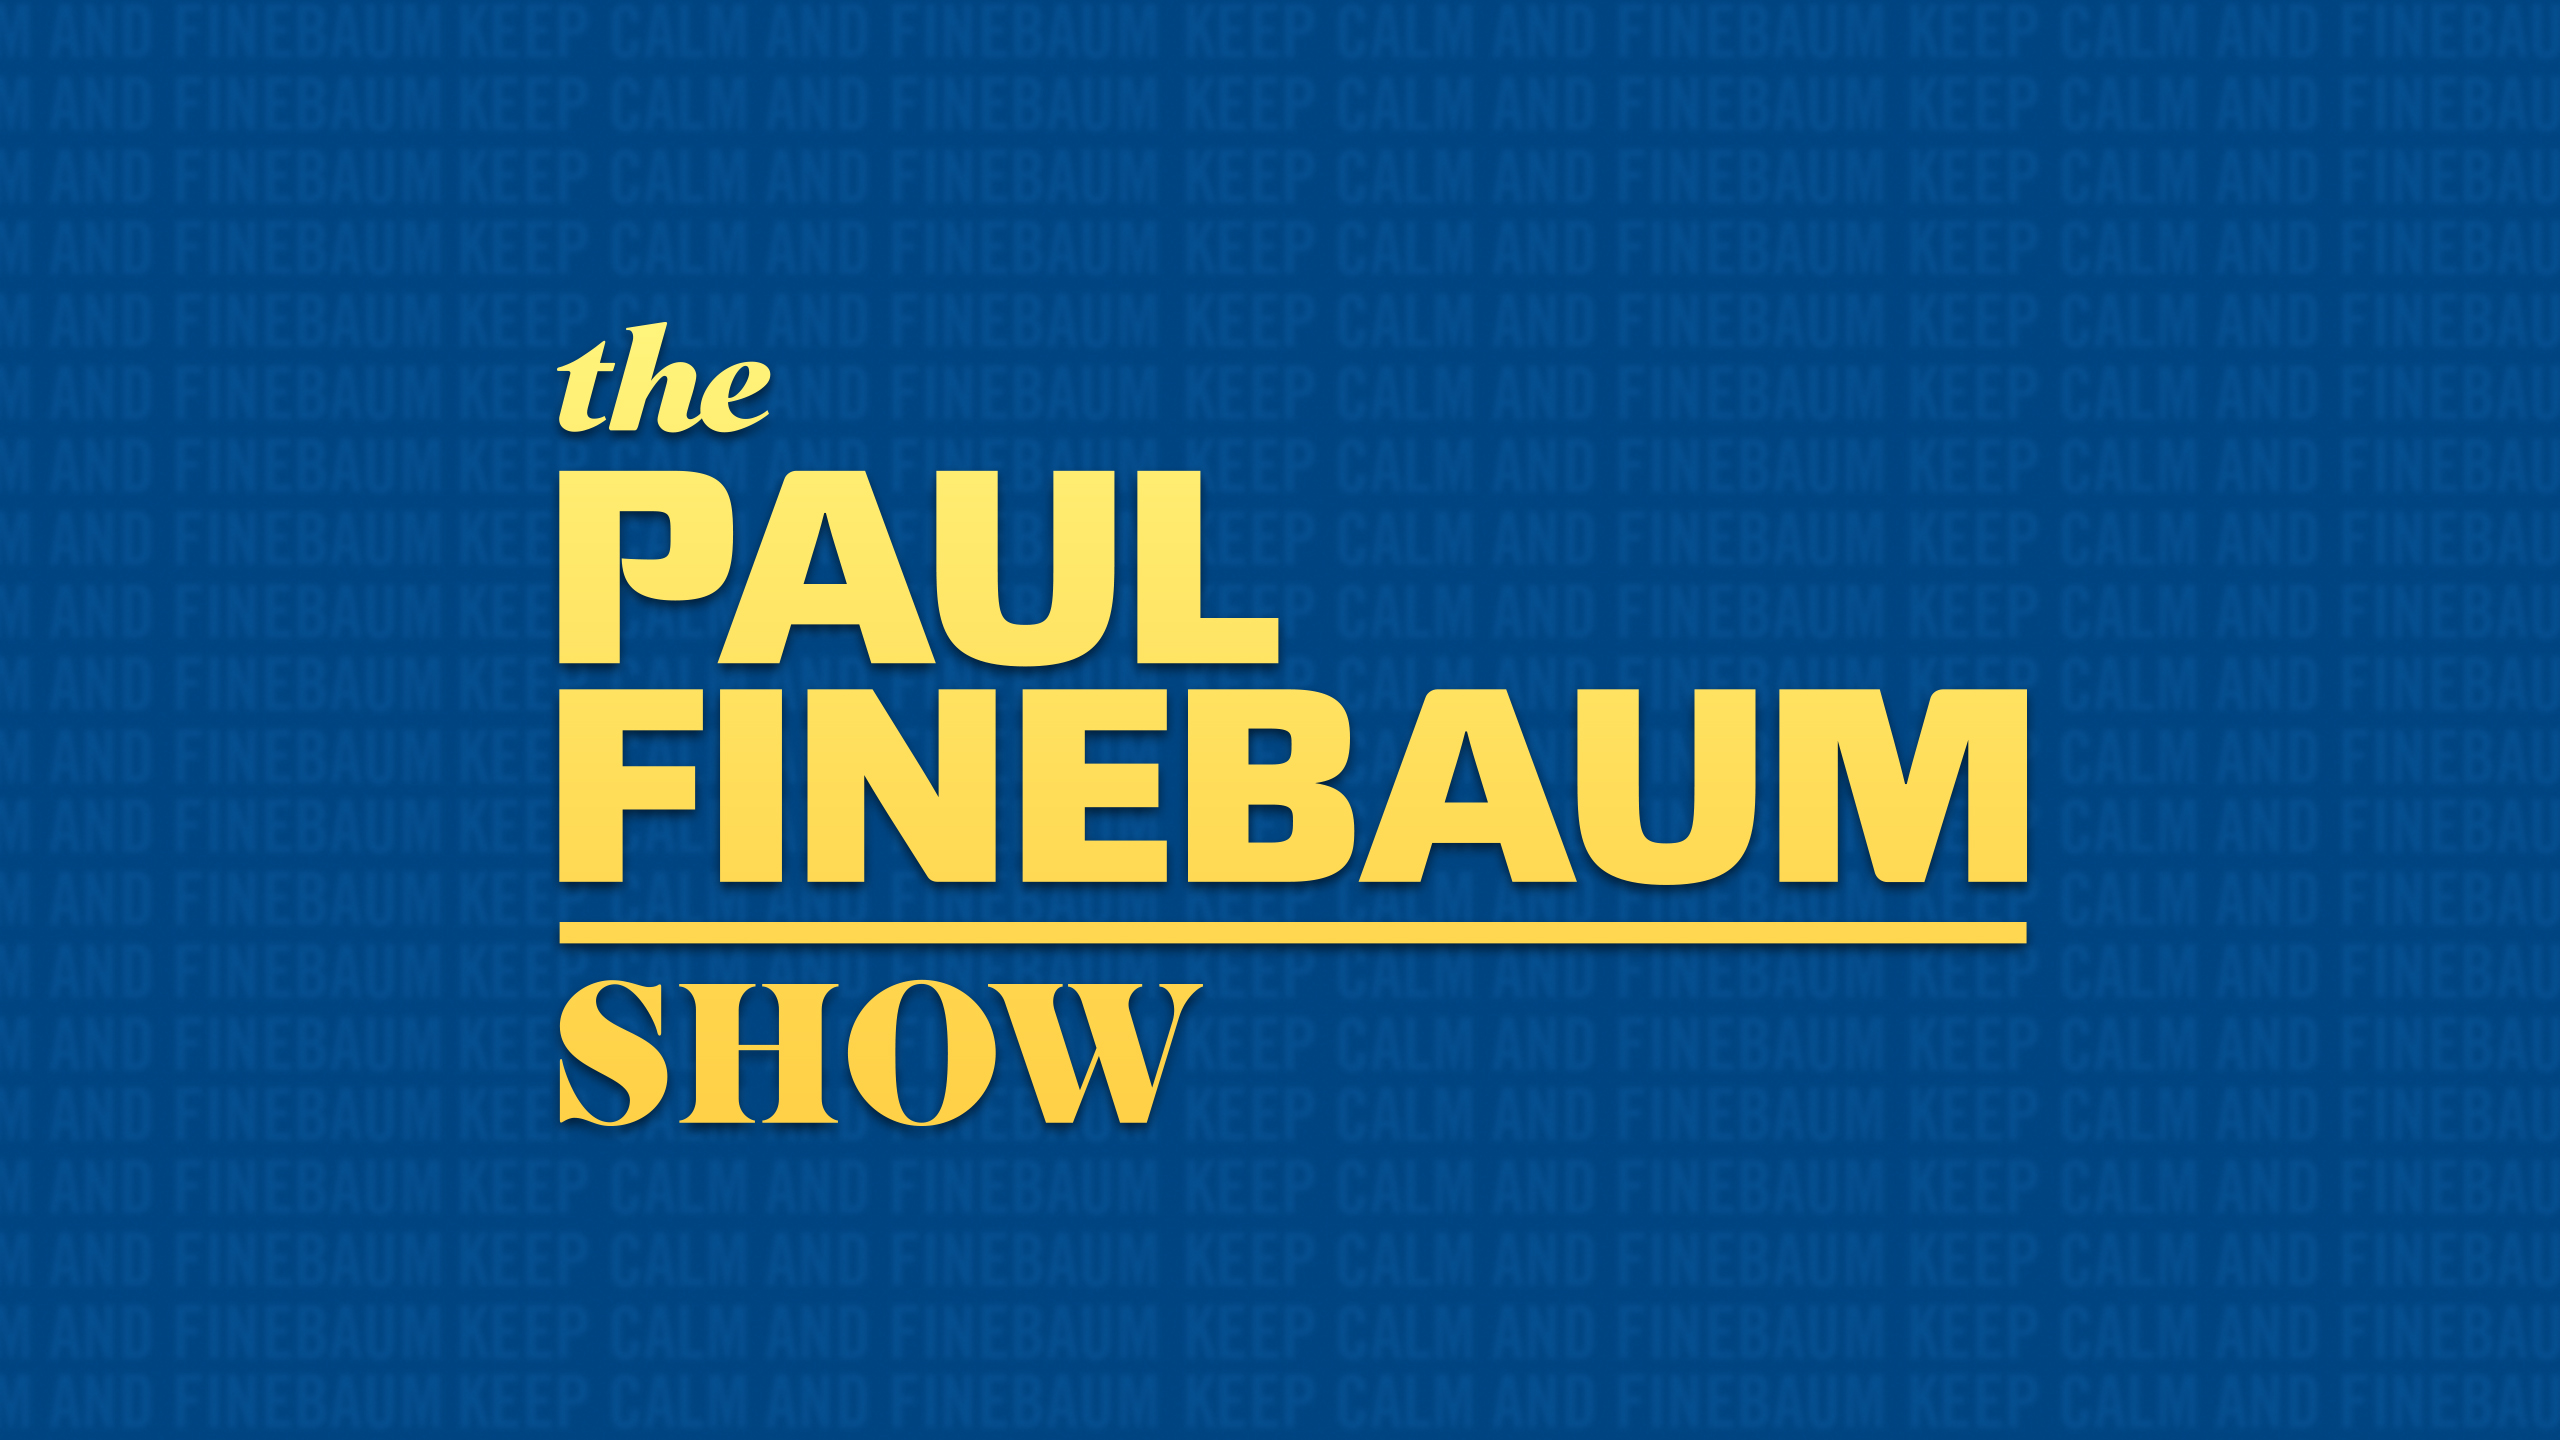 Fri, 1/18 - The Paul Finebaum Show